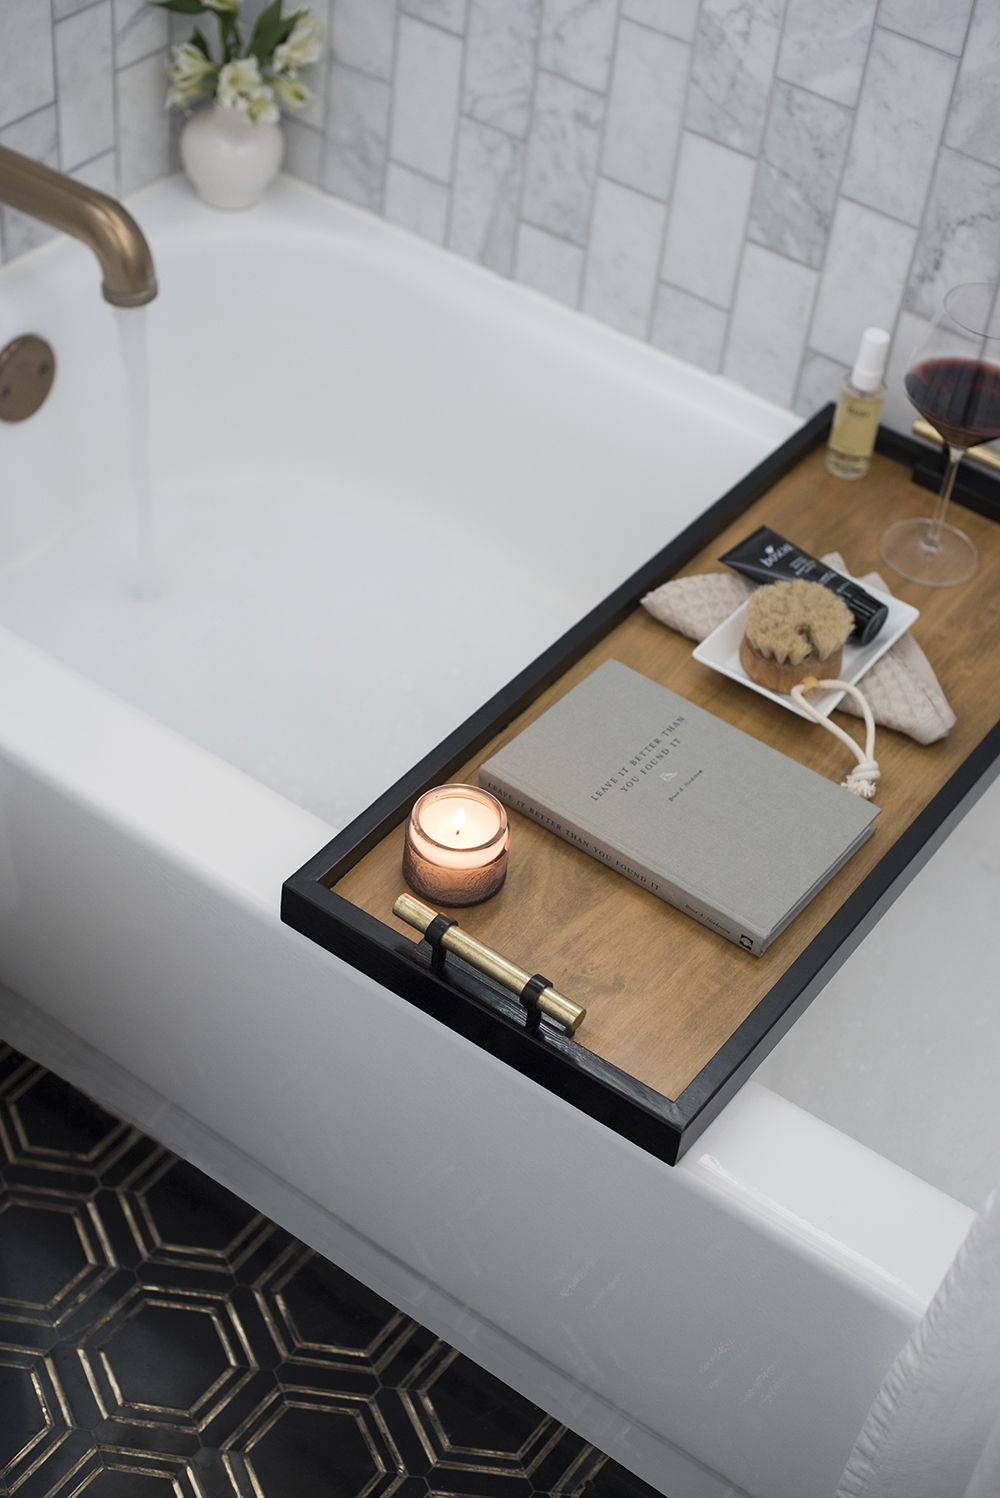 DIY Bath Caddy Tray   Roomfortuesday.com